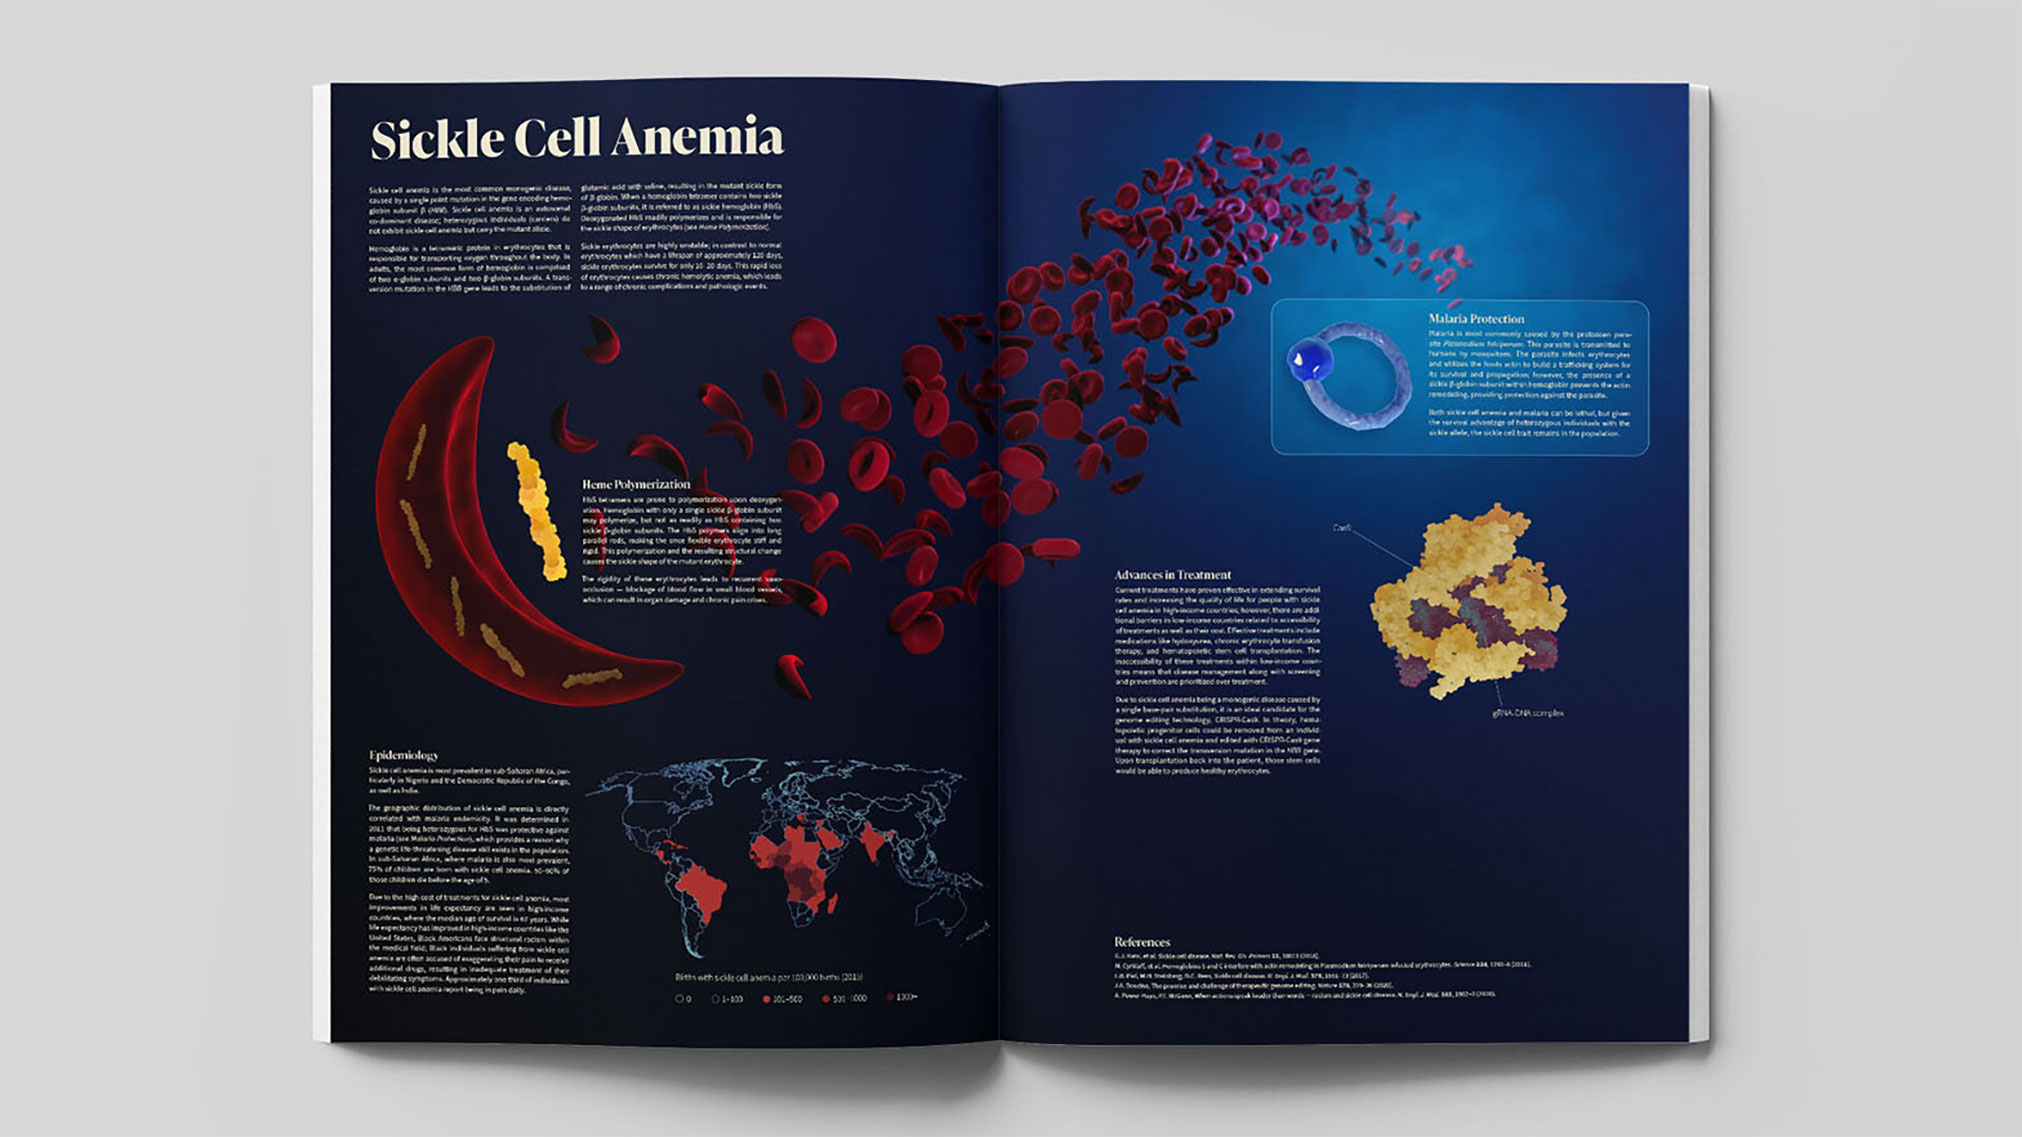 An infographic about sickle cell anemia I wrote and designed as a passion project. 3D models were created in Cinema 4D.